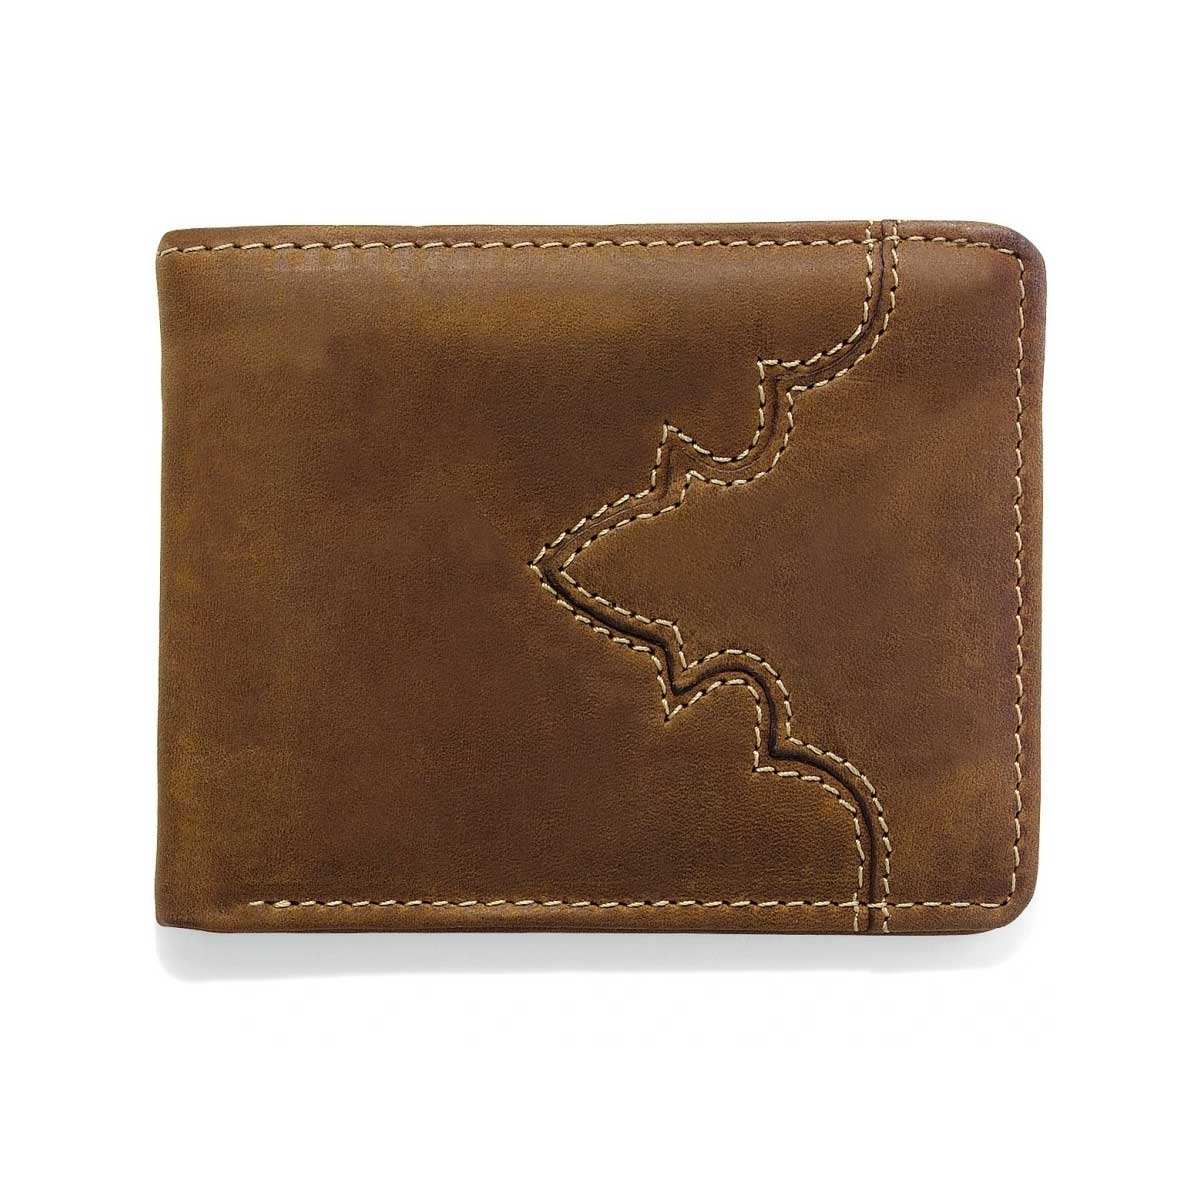 Leegin Creative Leather Silver Creek Western Classic Bi-Fold Wallet